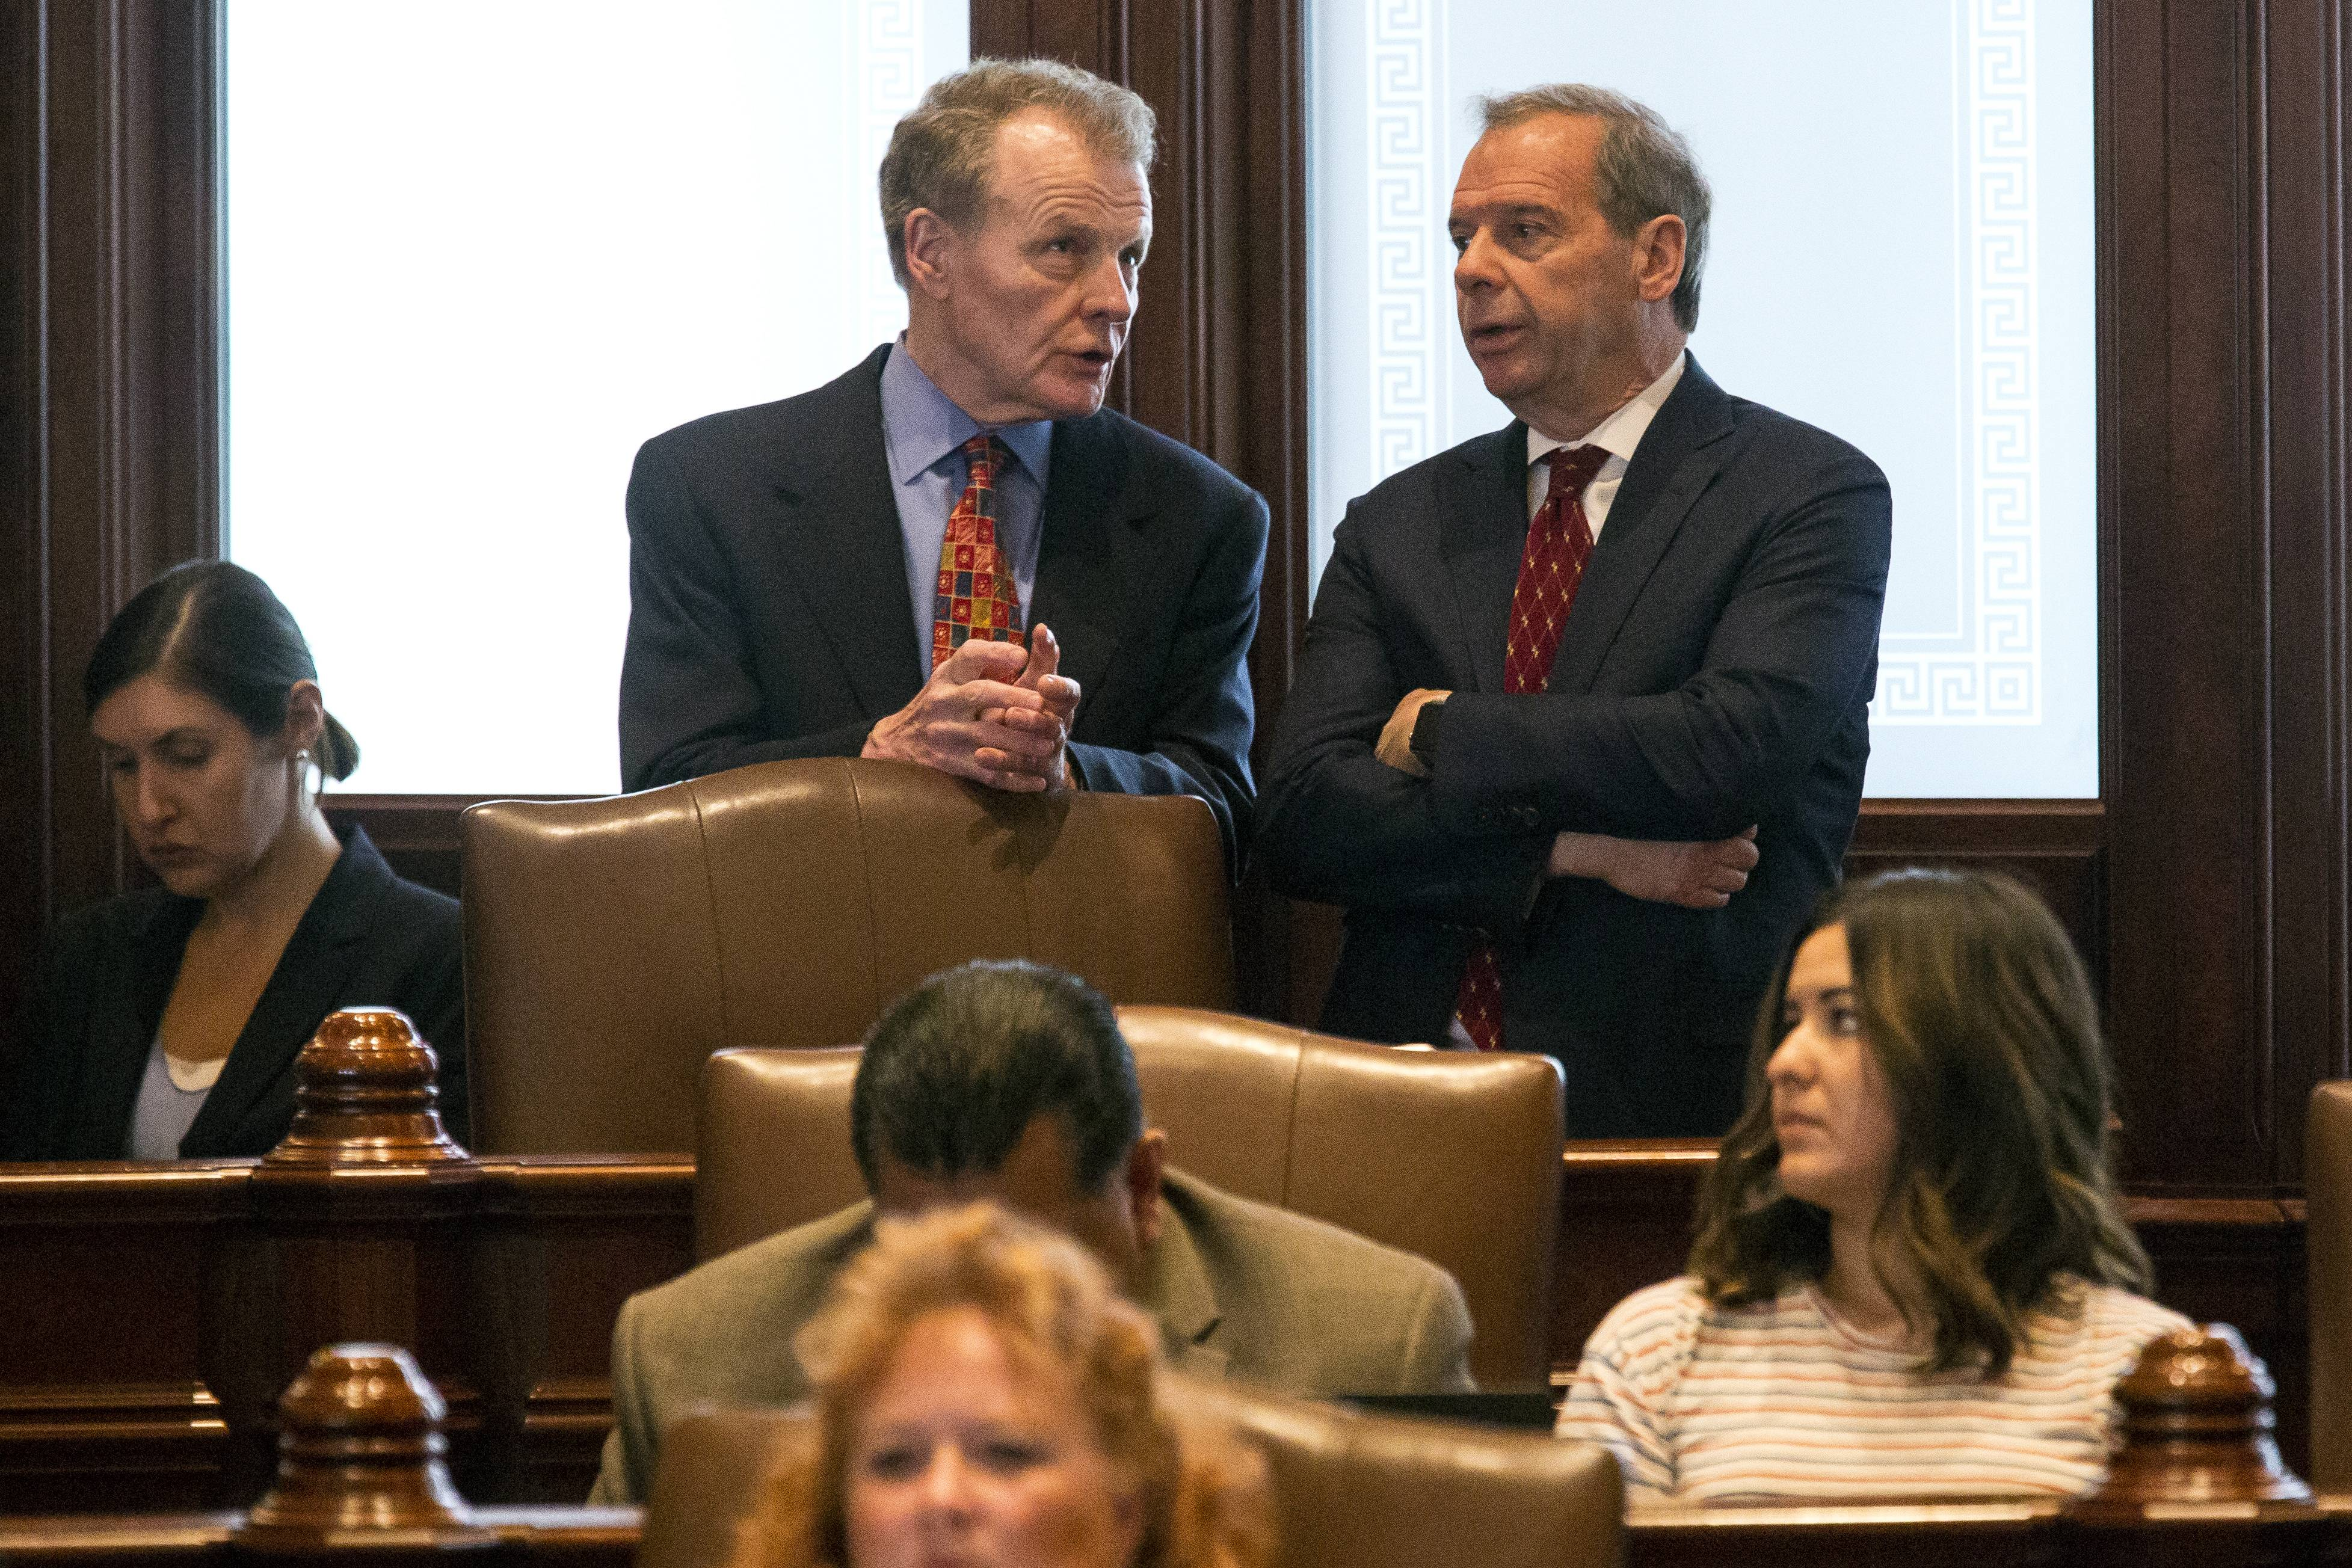 House Speaker Michael Madigan, a Chicago Democrat, left, and Senate President John Cullerton, a Chicago Democrat, talk on the Senate floor Tuesday at the Capitol in Springfield.